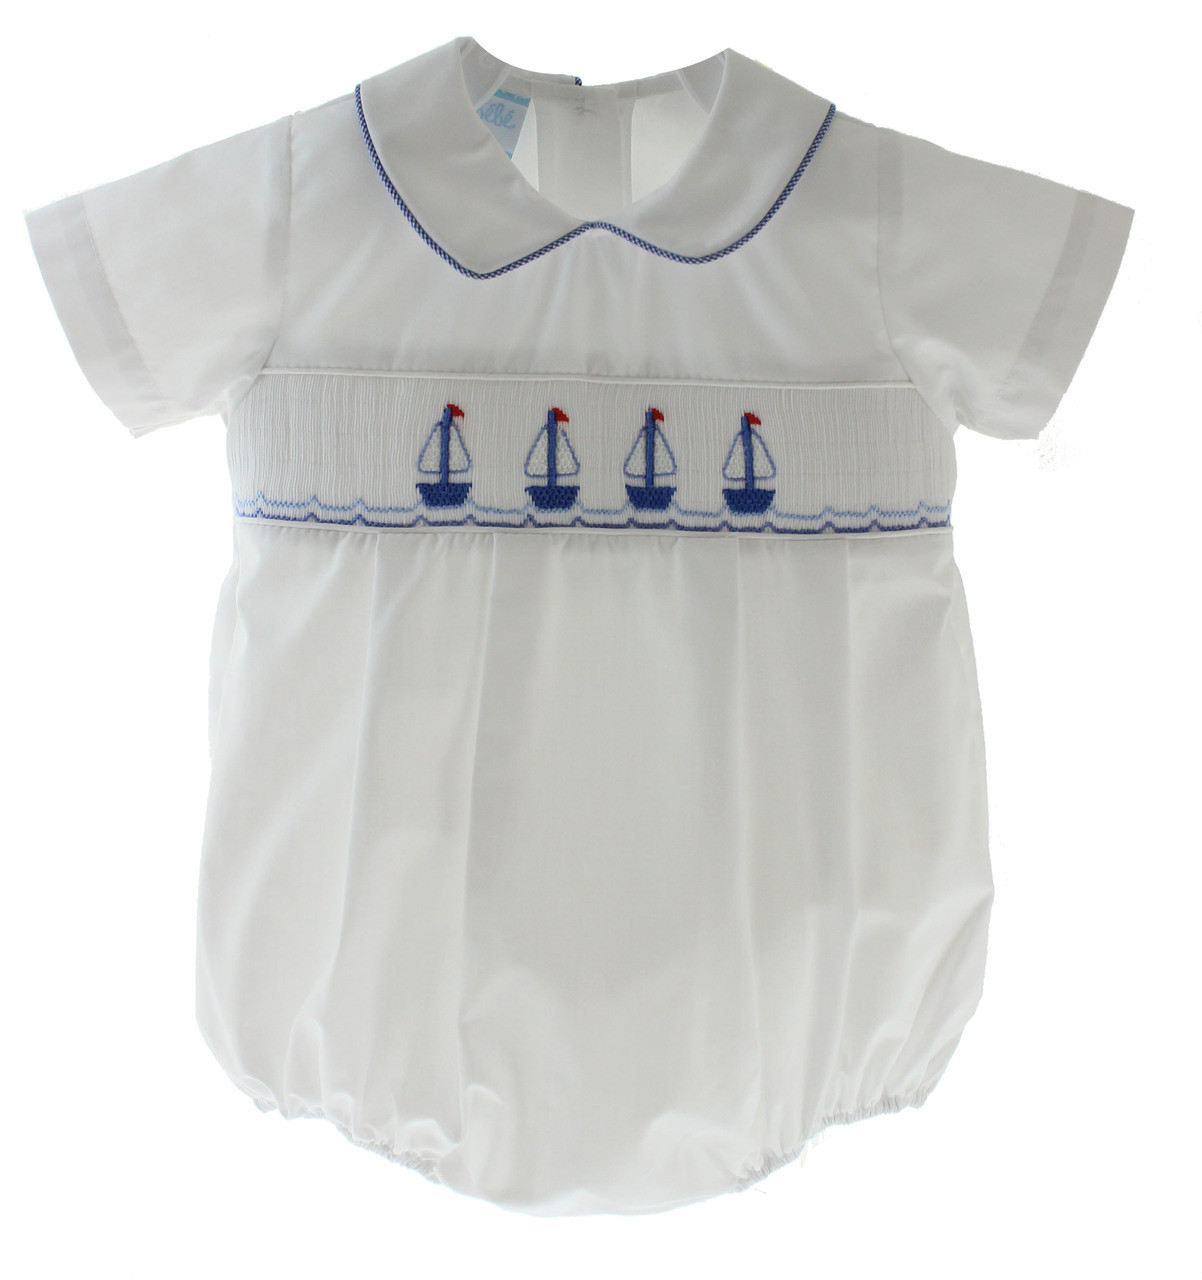 4b5ba84b6d7d Baby Boys White Smocked Sailboats Bubble Outfit - Hiccups Childrens ...